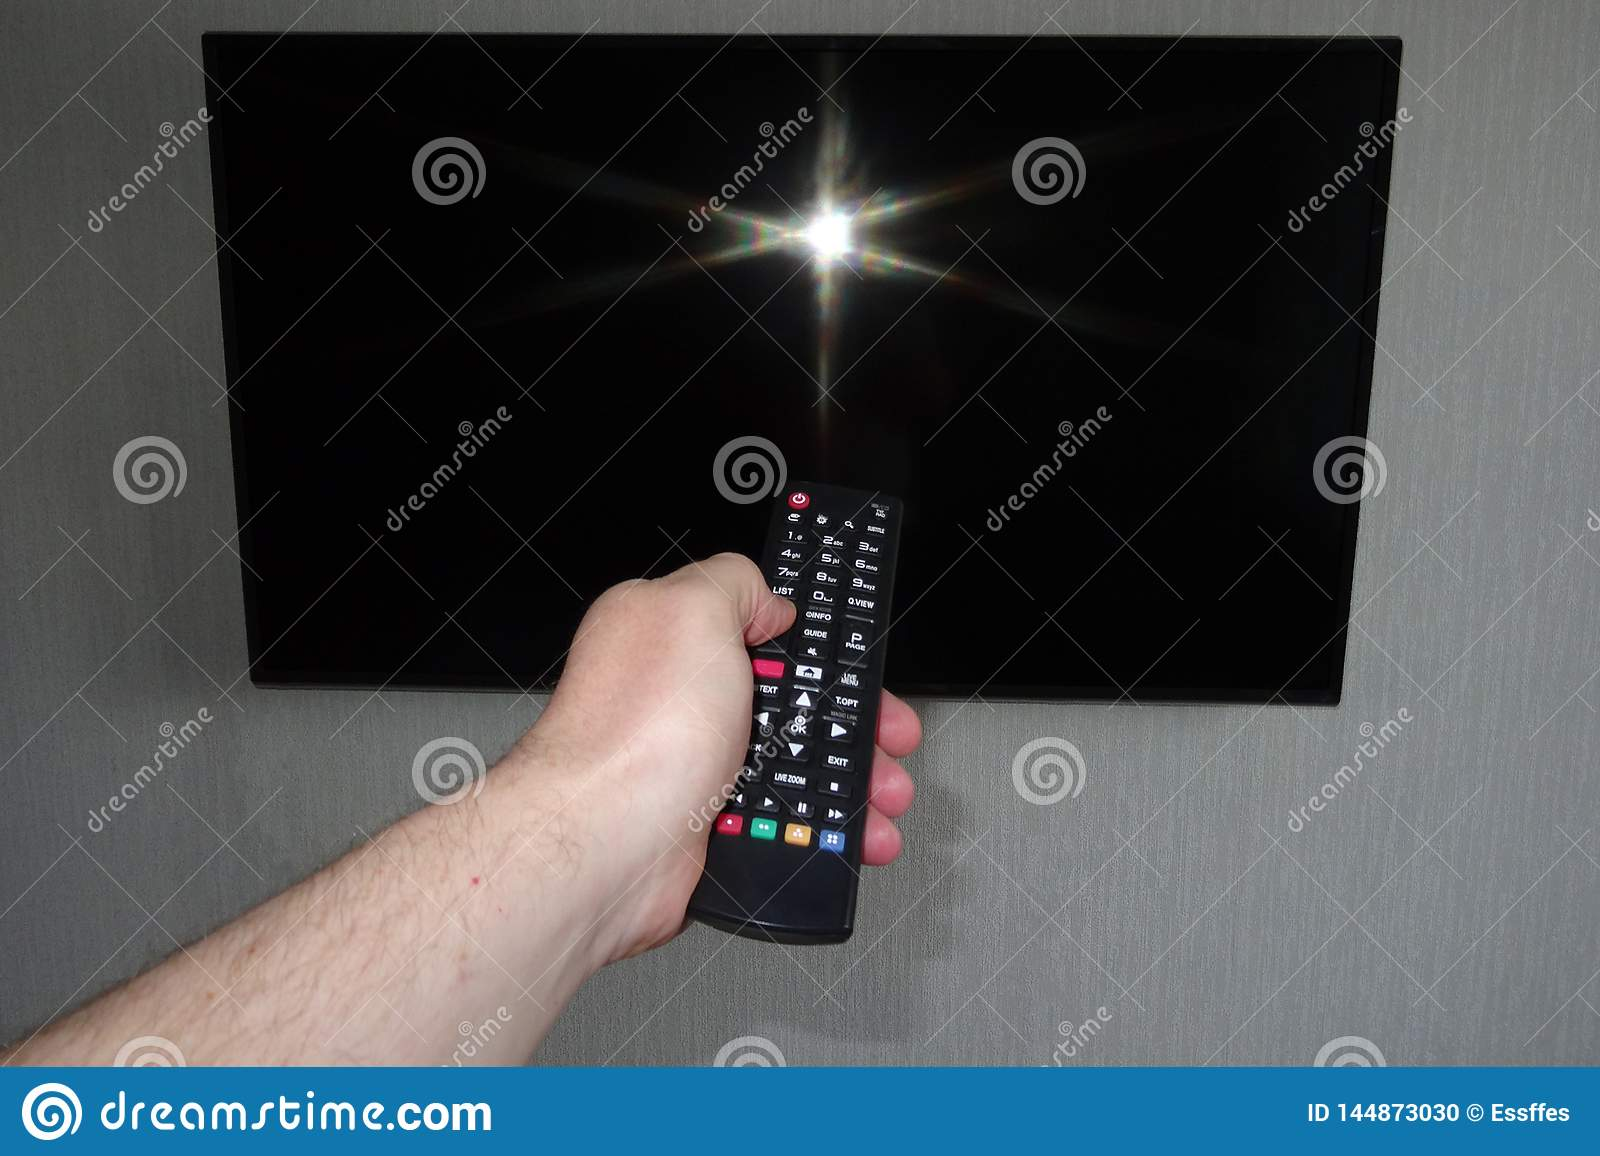 Human hand with a remote control in front of a black tv ice